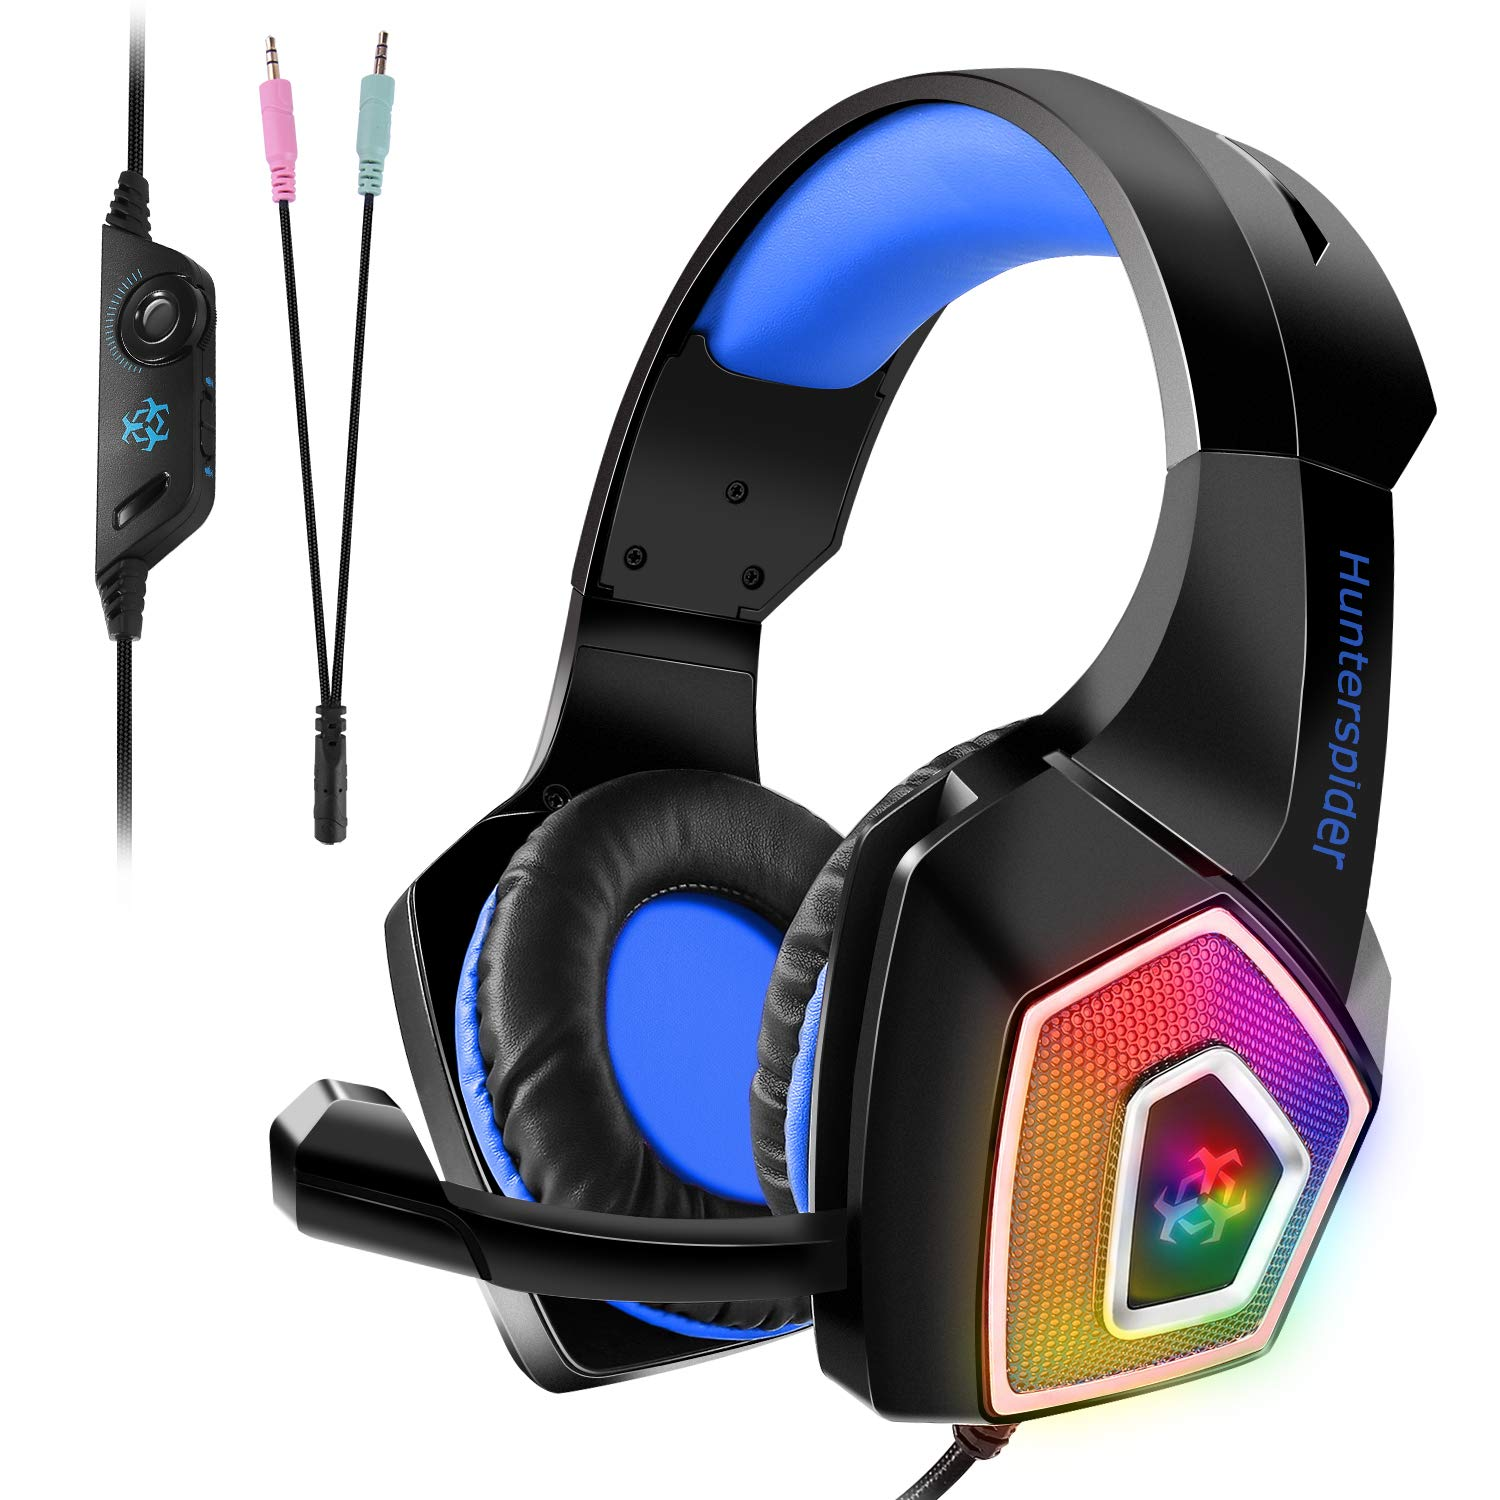 TENSWALL PS4 Auriculares gaming para PS4 o PC, Cascos Gaming con cable y LED,